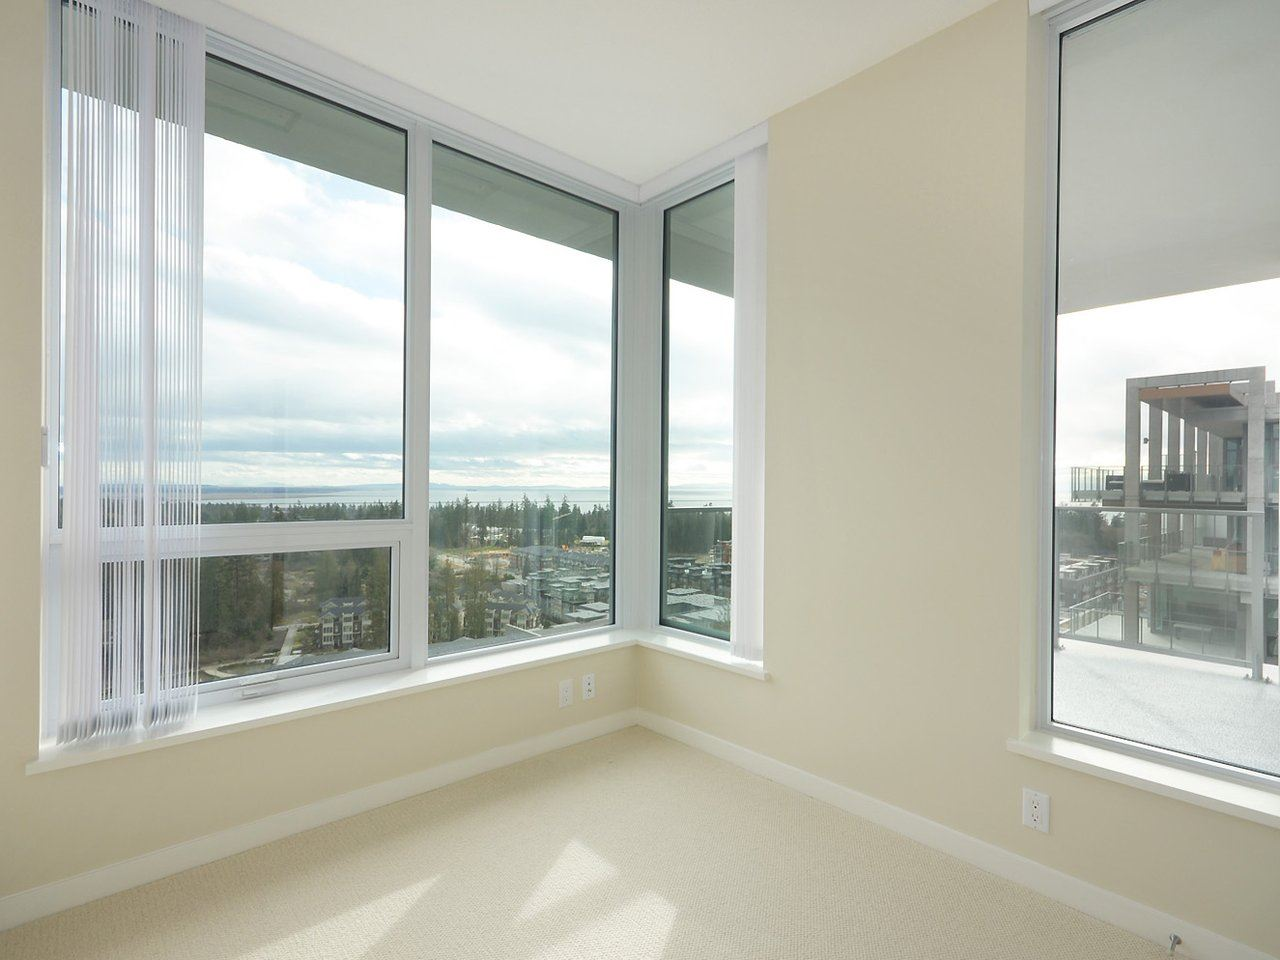 Condo Apartment at 2005 5728 BERTON AVENUE, Unit 2005, Vancouver West, British Columbia. Image 11